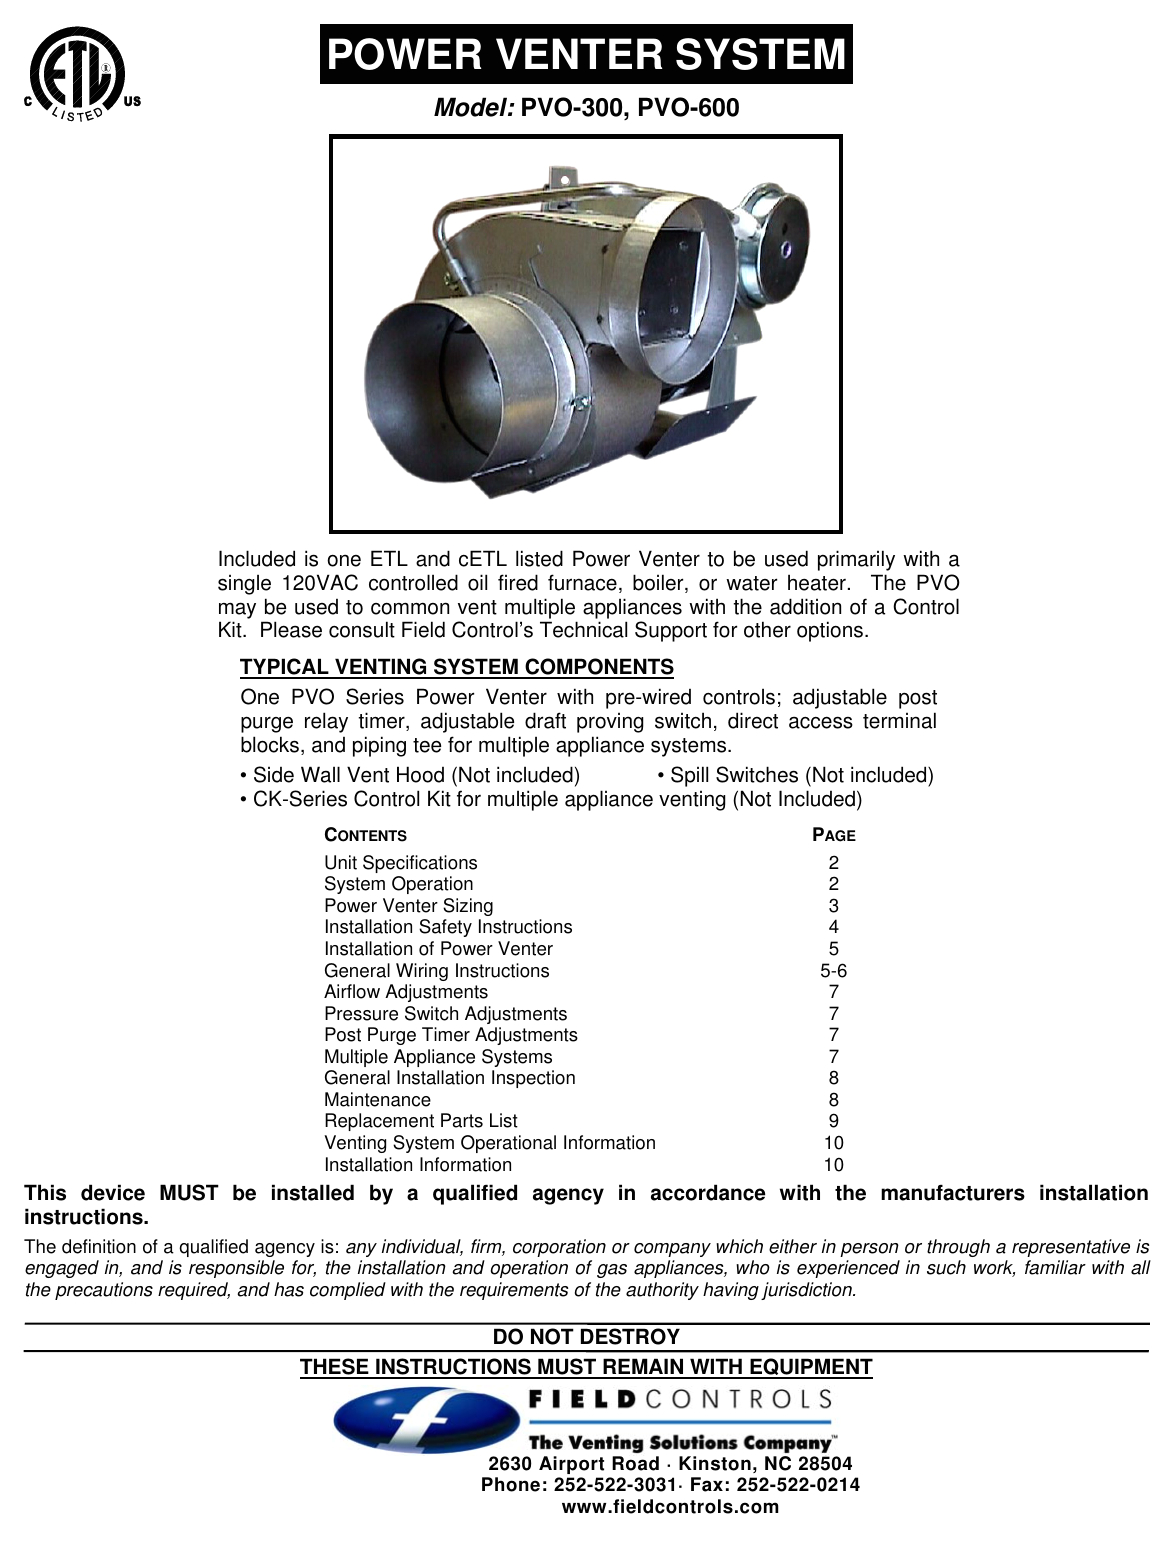 fieldcontrolspvo600usersmanual427562 614804742 user guide page 1 png